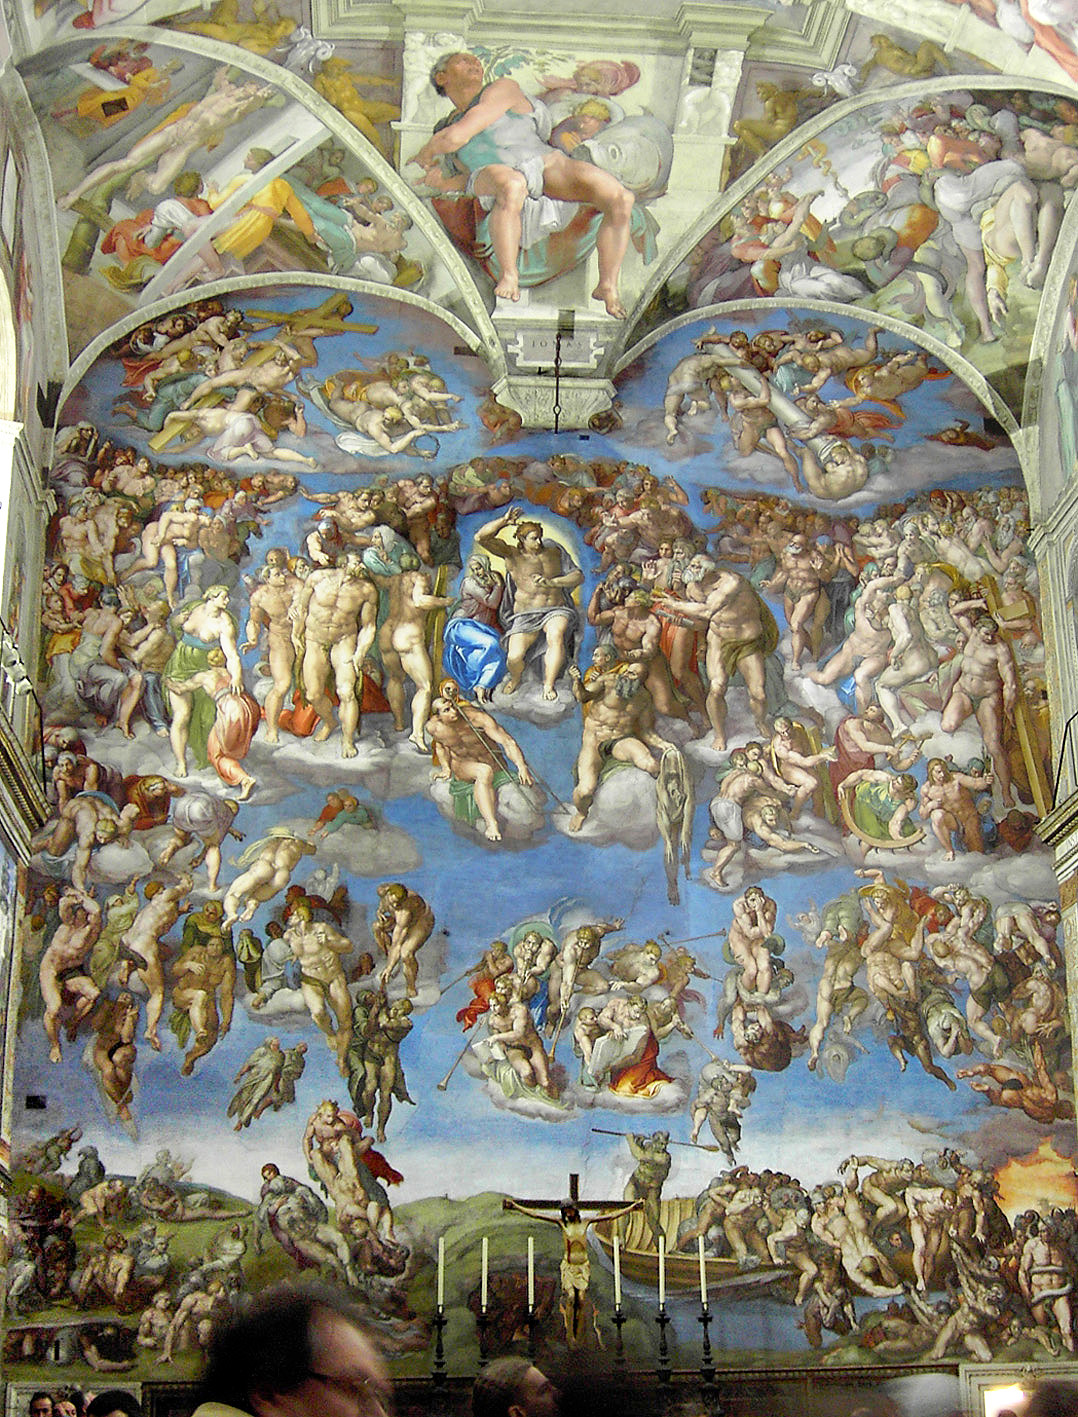 Michelangelo's The Last Judgment, Southern Wall, Sistine Chapel, Rome, Italy